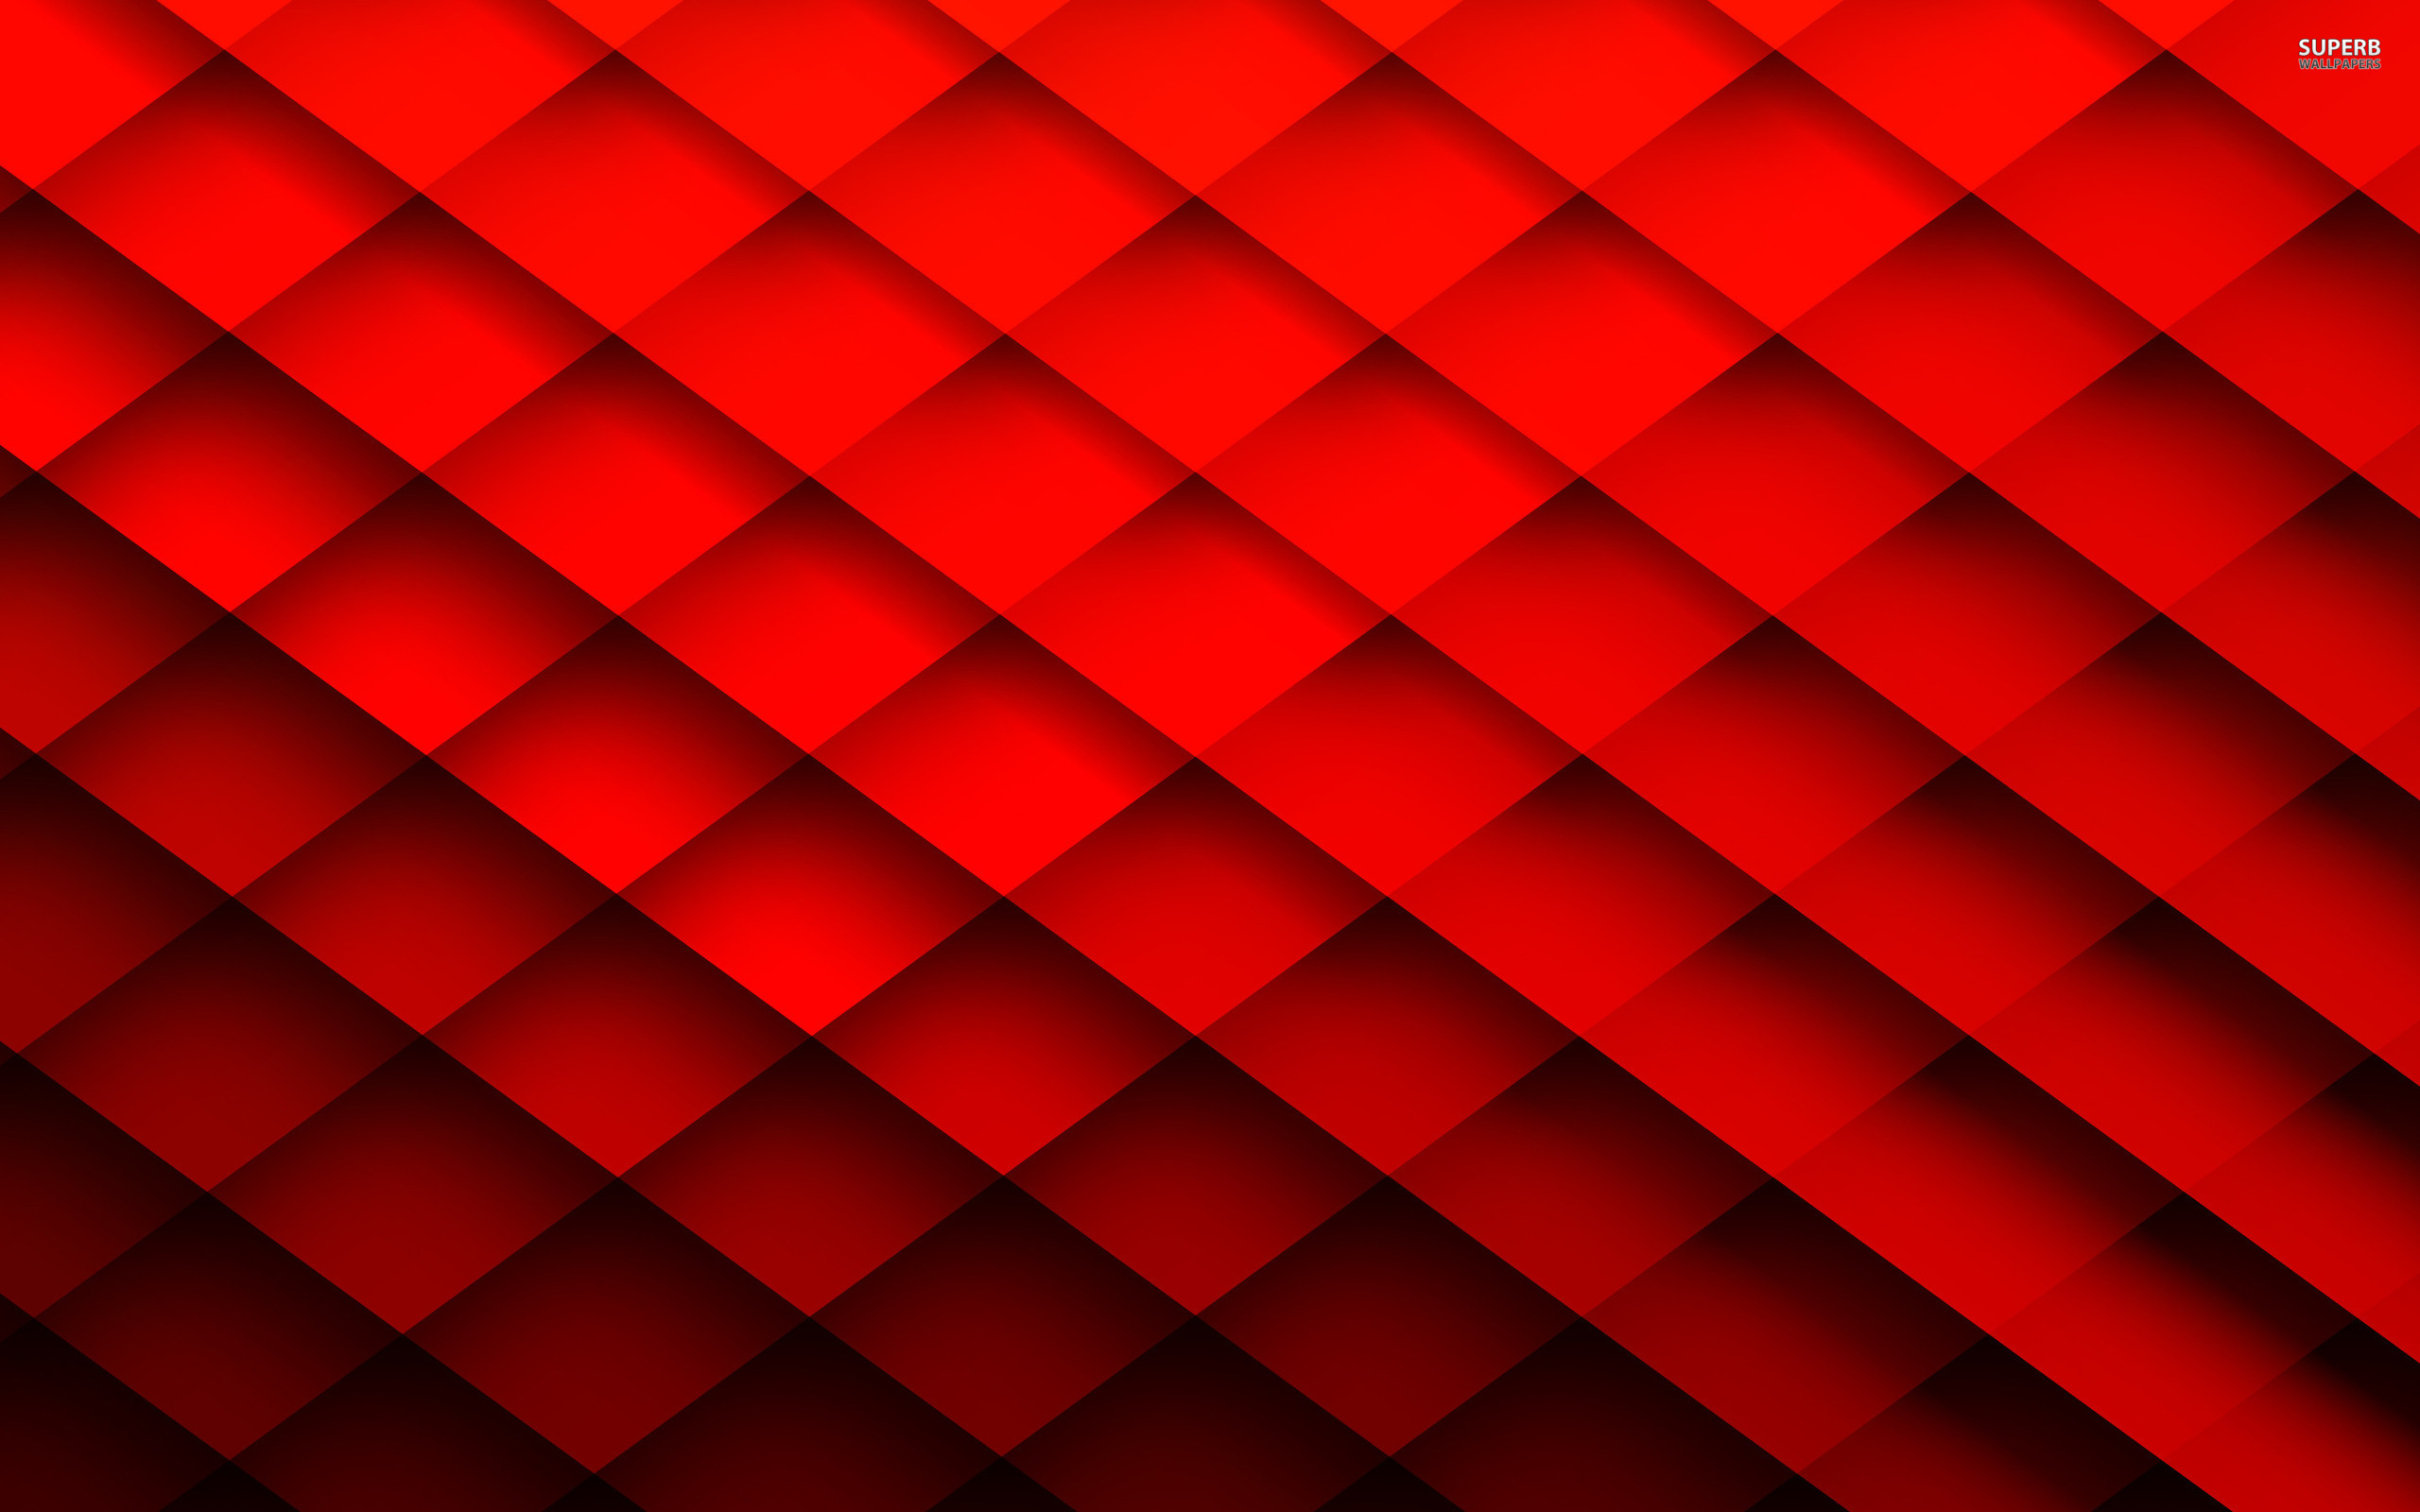 XQY:29 Red Images - Widescreen Wallpapers: Red, 46+ on GZHaixieR